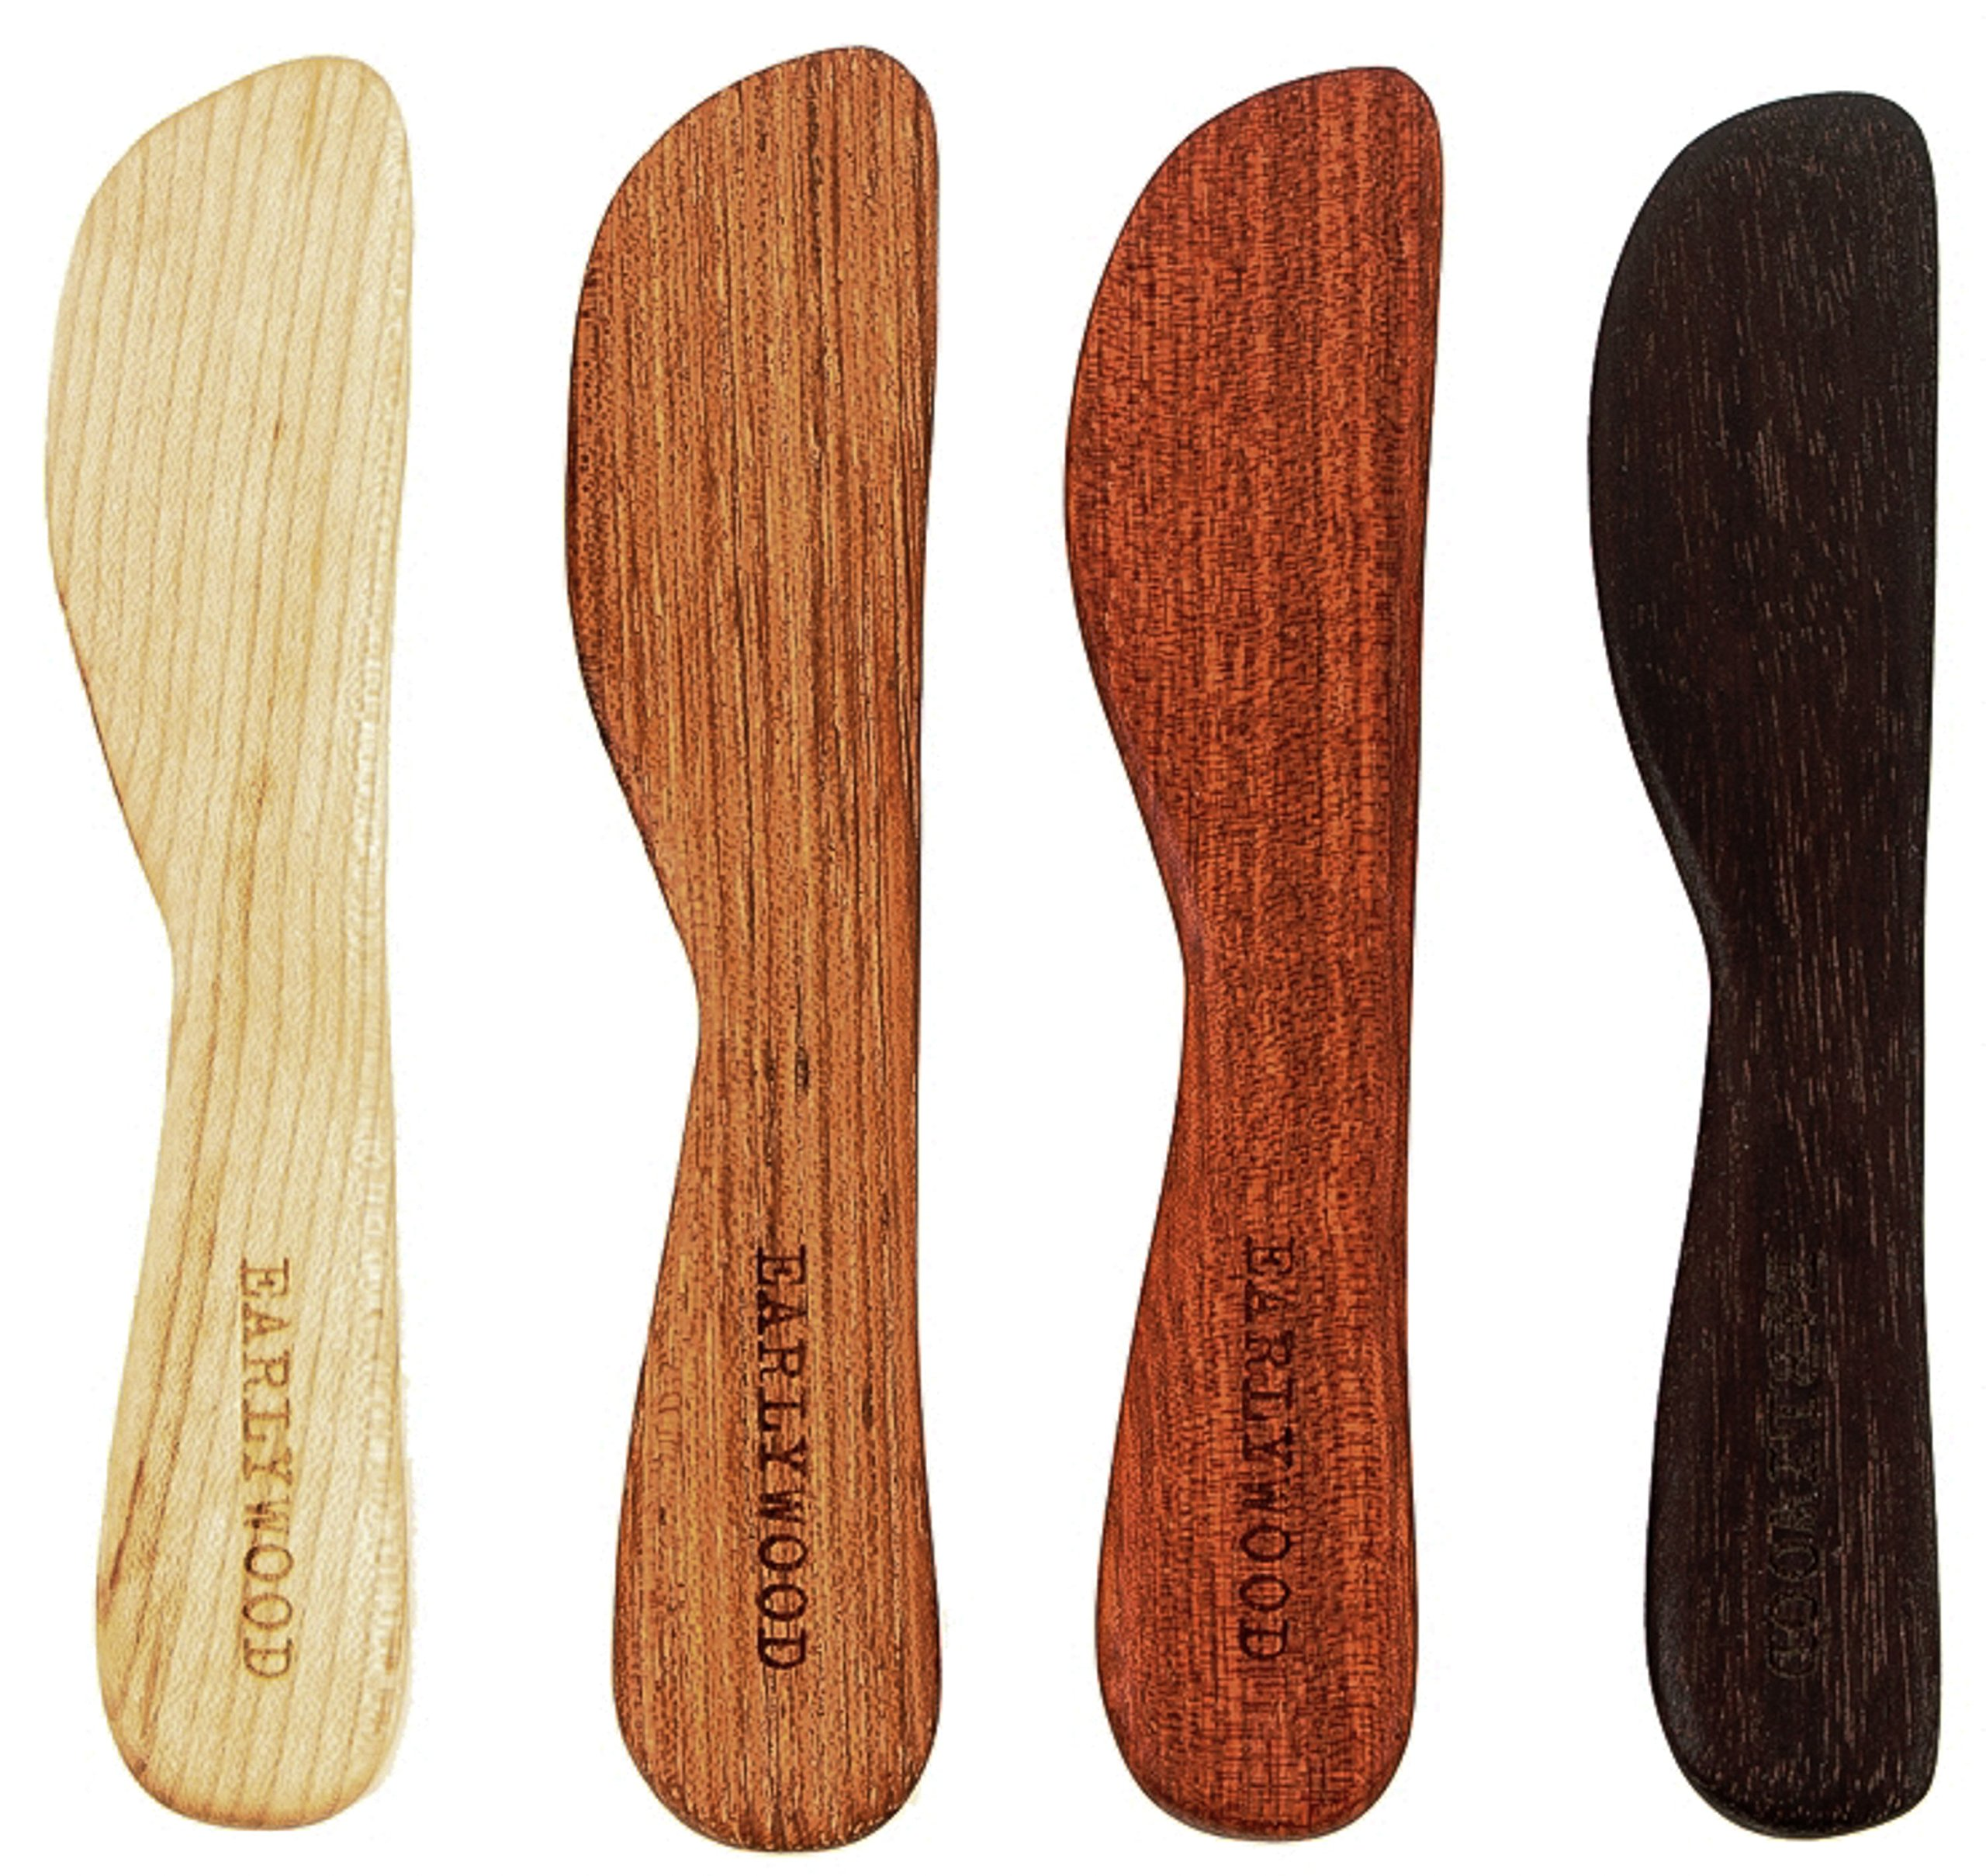 Earlywood Small Spreader Set - Handmade Hardwood 4-Piece Cheese Serving Set - Bloodwood, Hard Maple, Jatoba, Mexican Ebony by Earlywood (Image #1)